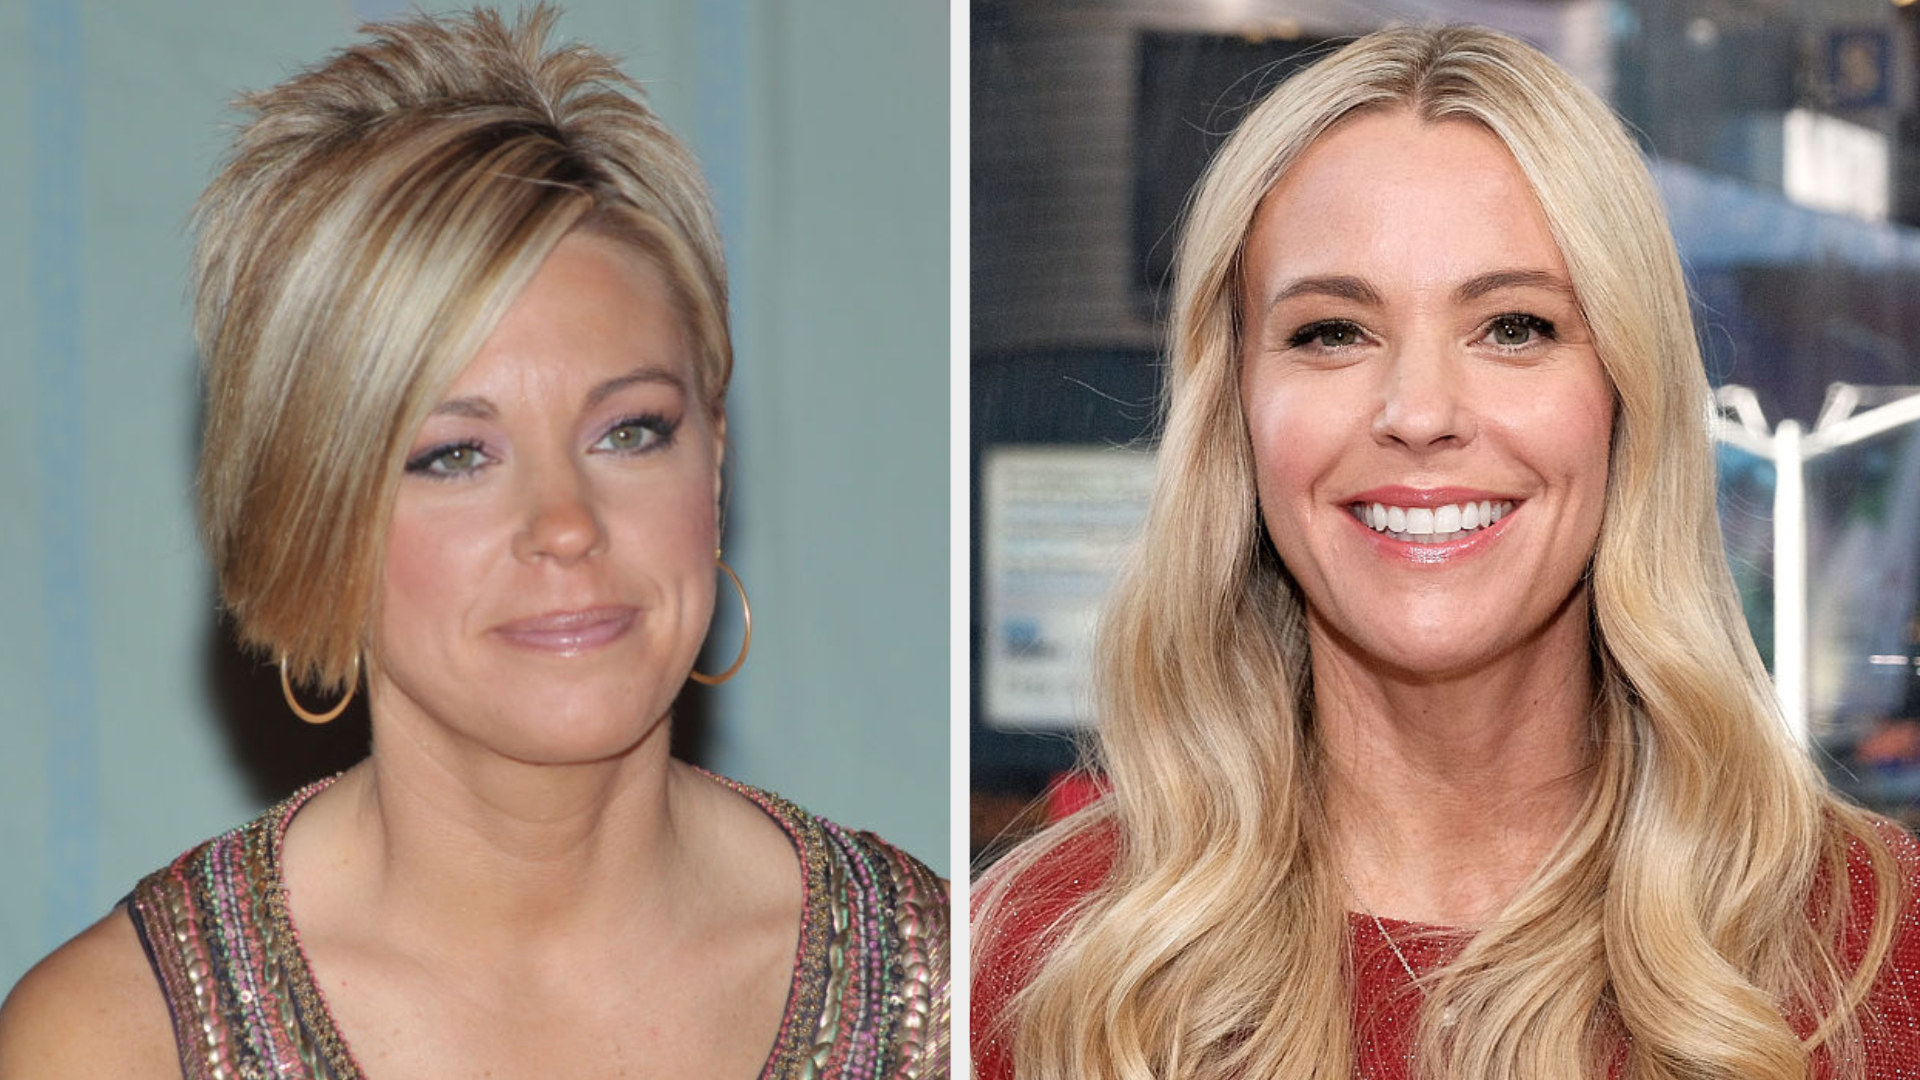 Kate with an asymmetrical pixie cut next to Kate with long blonde hair